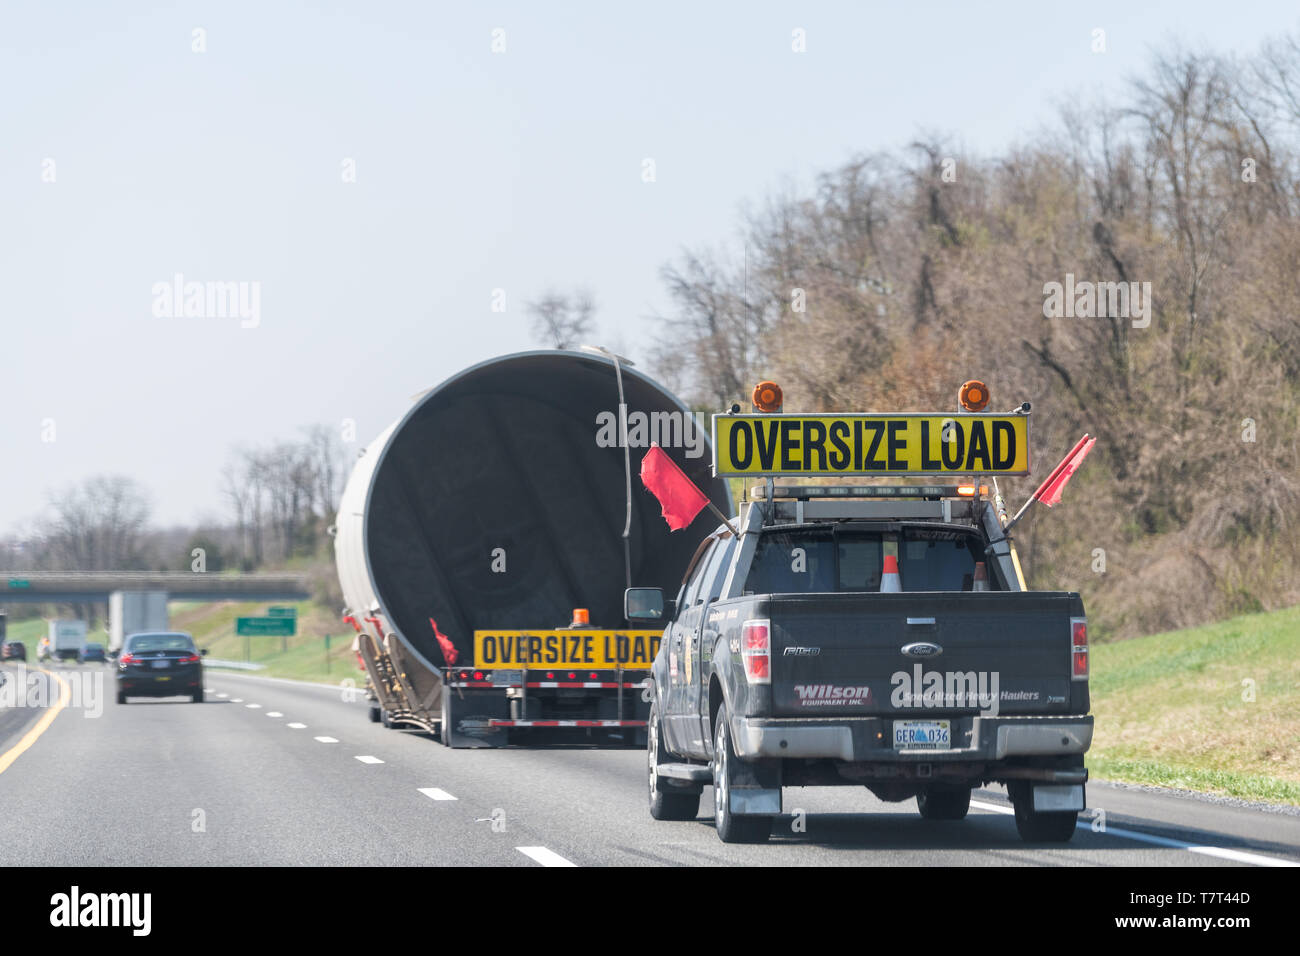 Woodstock, USA - April 18, 2018: Hauler truck trailer vehicle hauling oversize load of concrete pipe tube on interstate highway road in Virginia with  - Stock Image